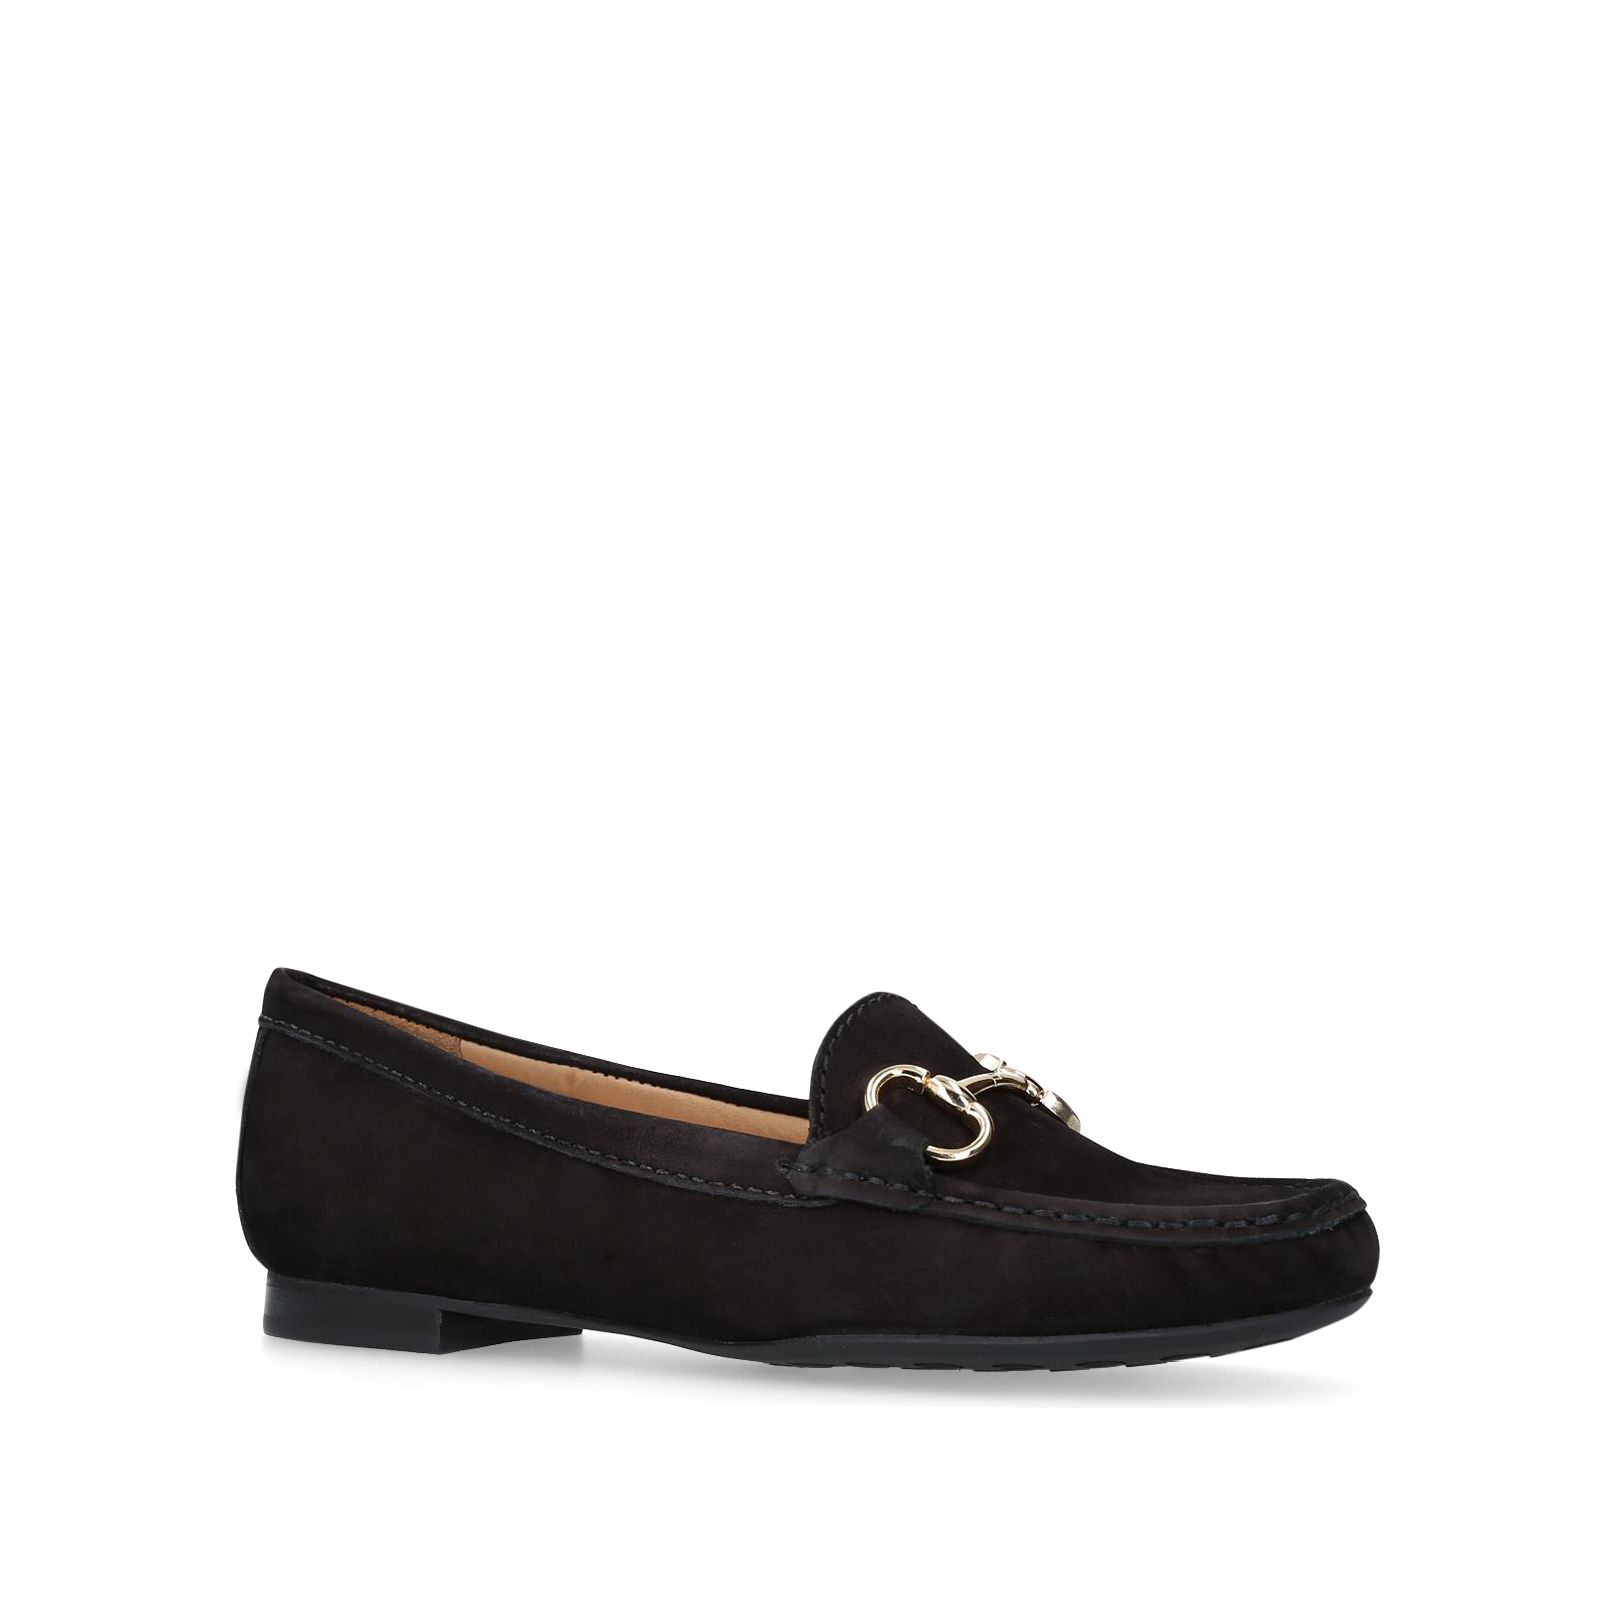 Carvela Comfort Cindy Loafers, Black